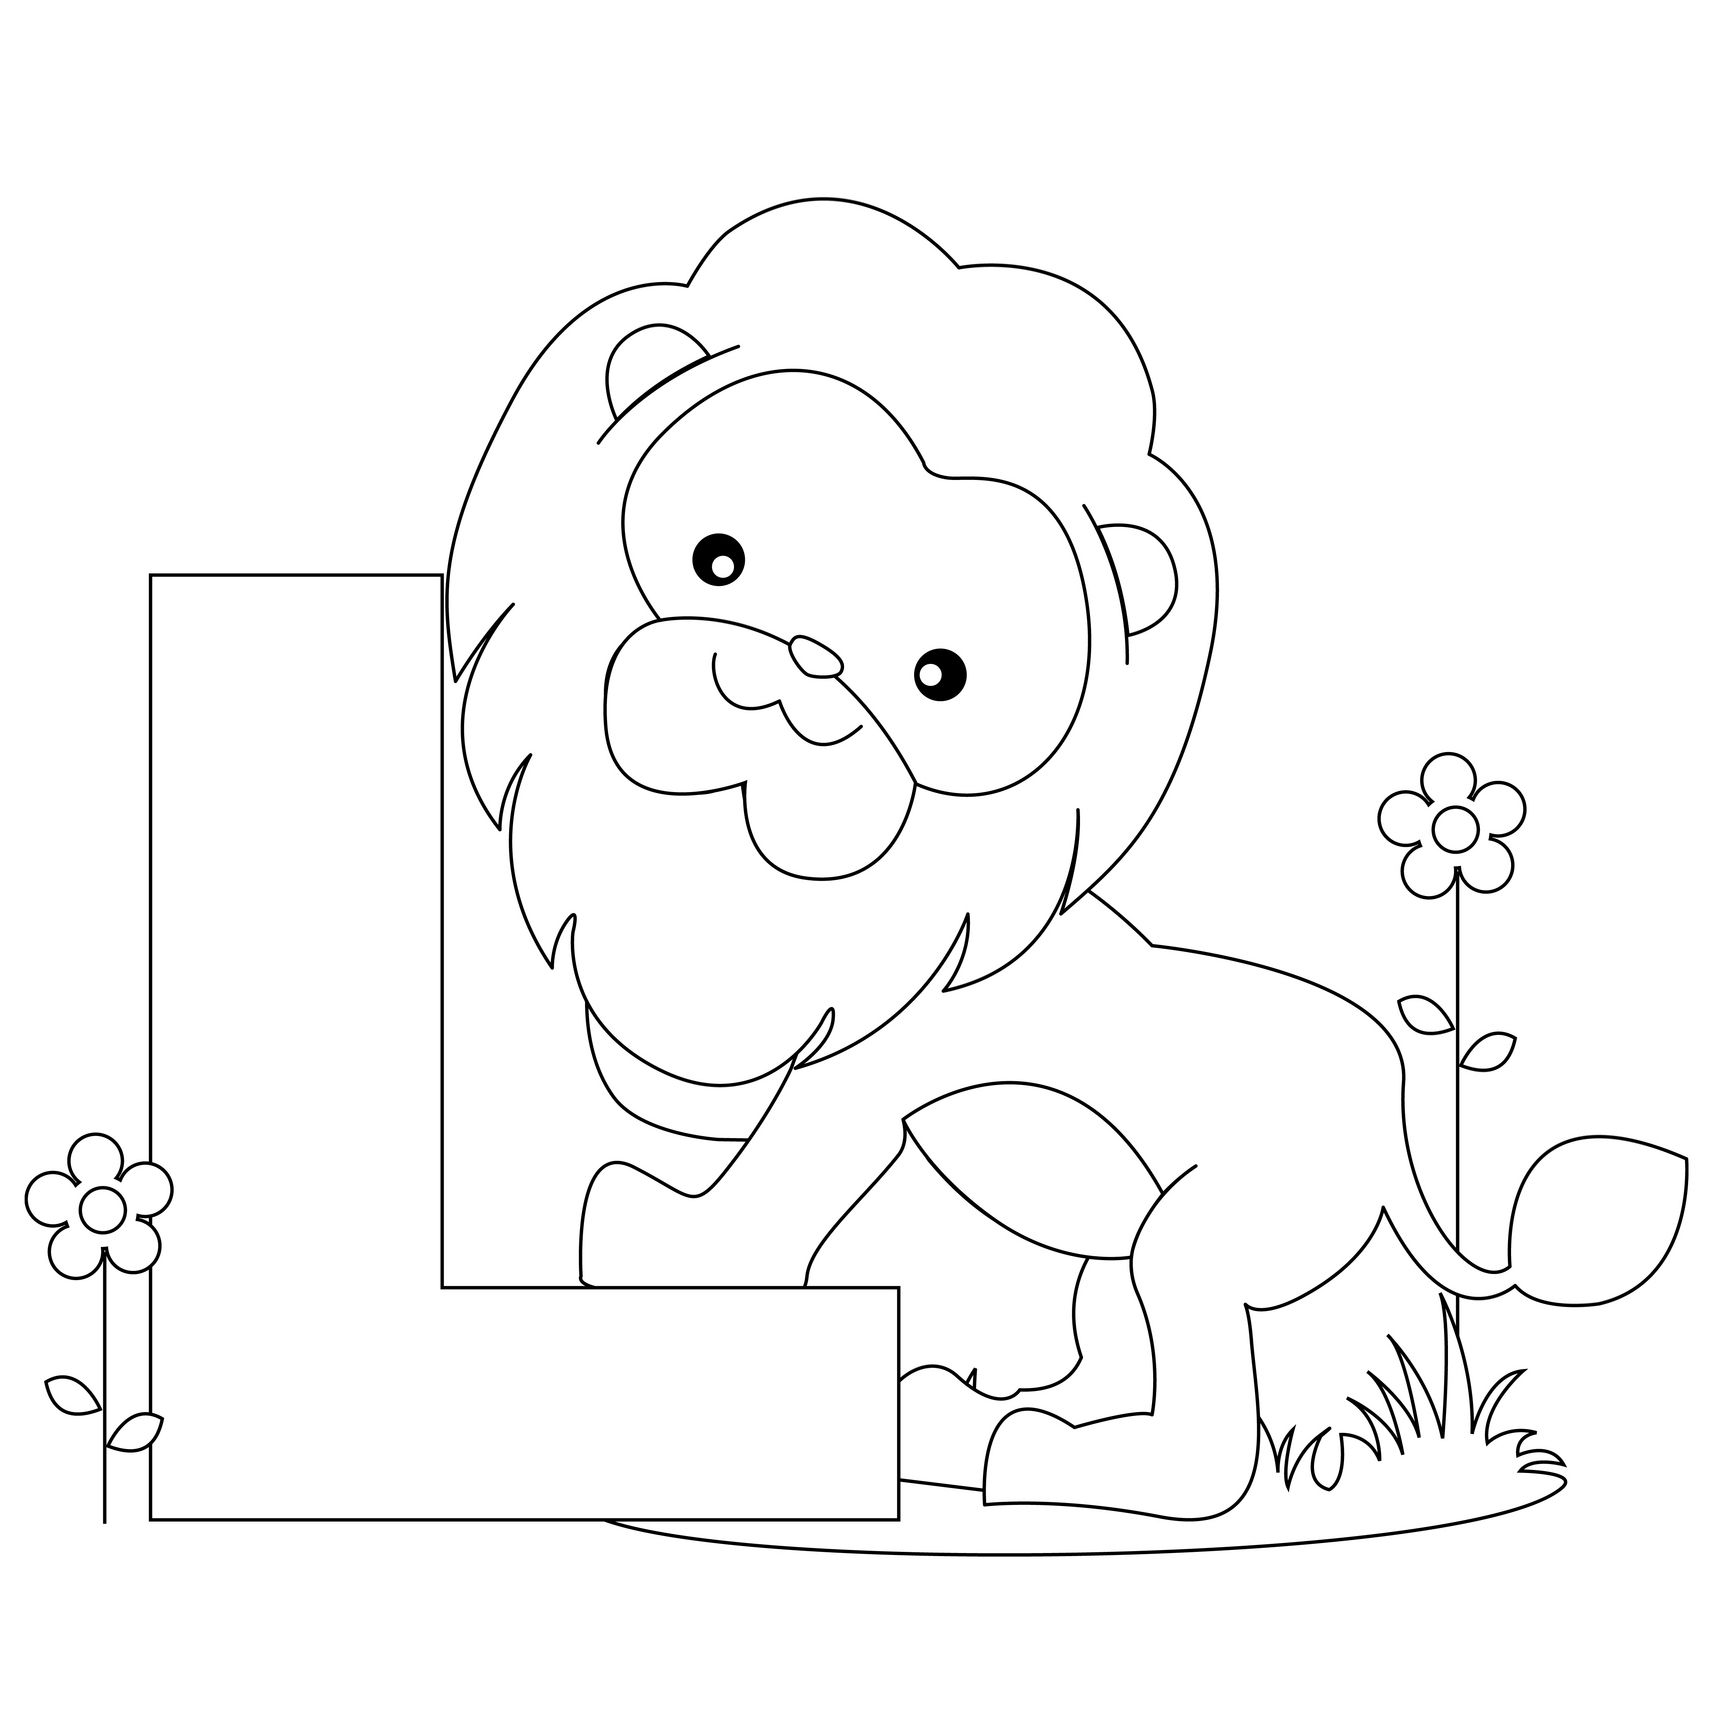 Amazing Printable Animal Alphabet Worksheets Letter L Is For Lion   Printable Coloring  Pages For Kids